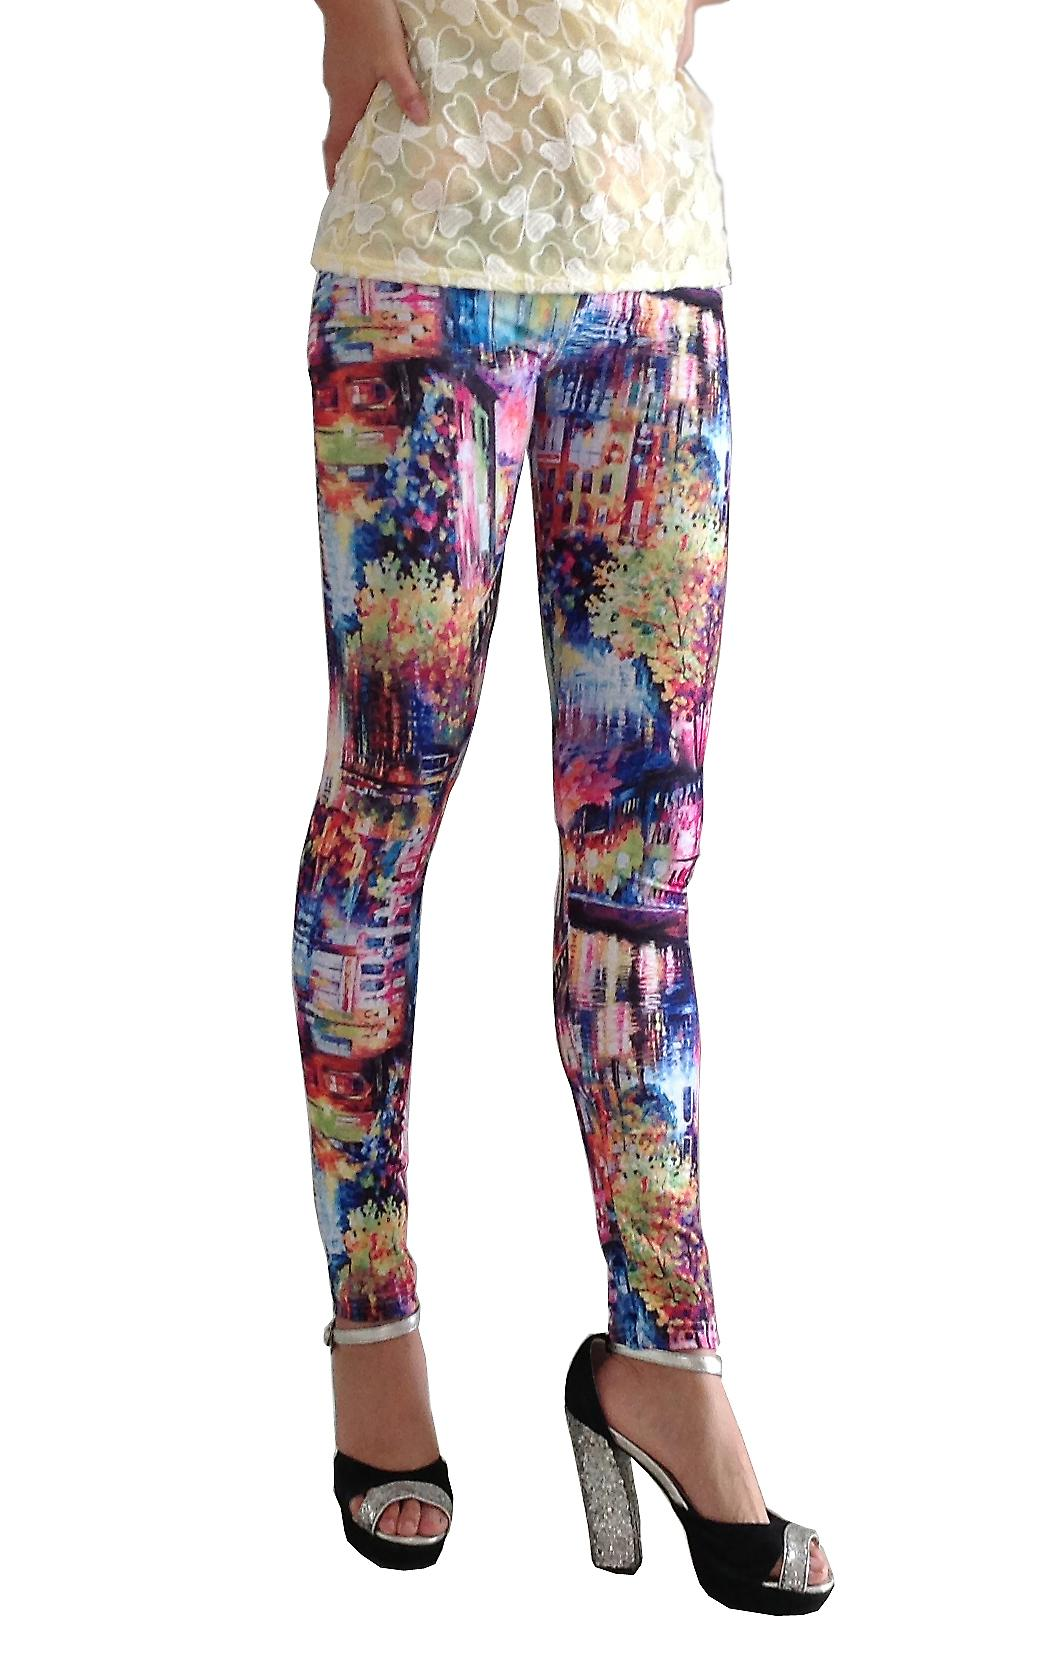 Waooh - Fashion - Leggings Pattern Floral Painting Style Sela